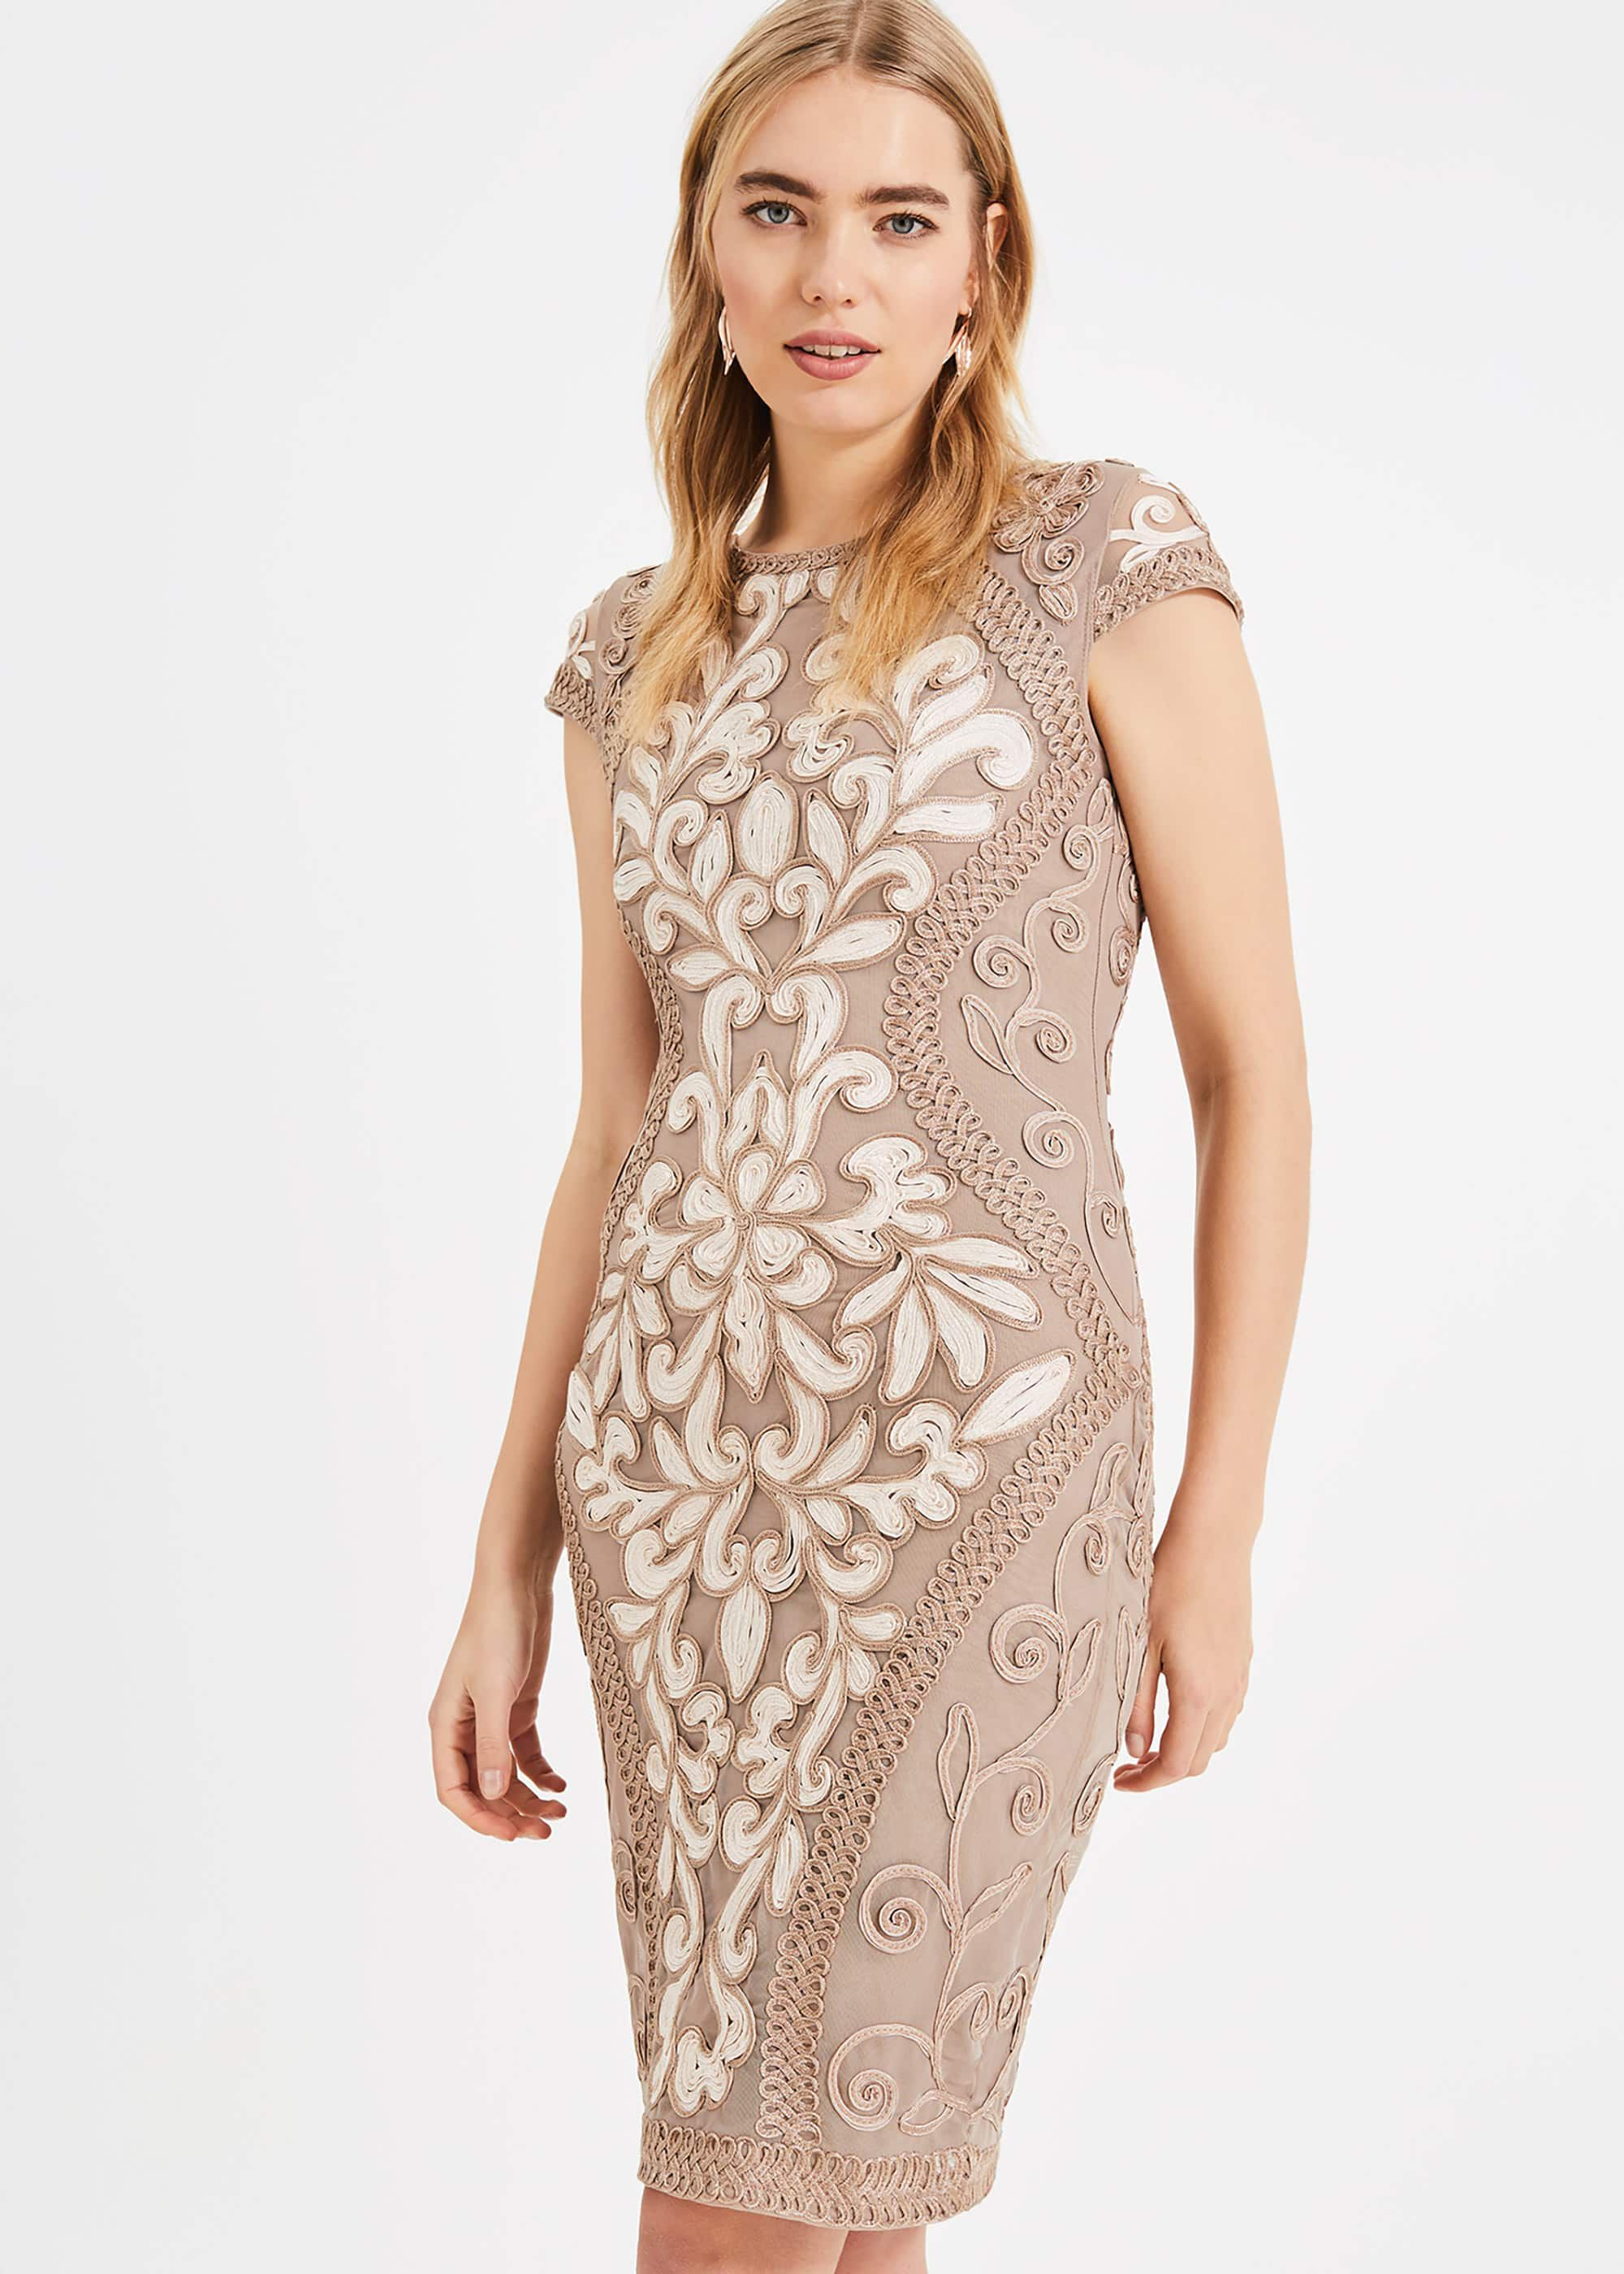 Phase Eight Perdy Tapework Lace Dress, Cream, Fitted, Occasion Dress